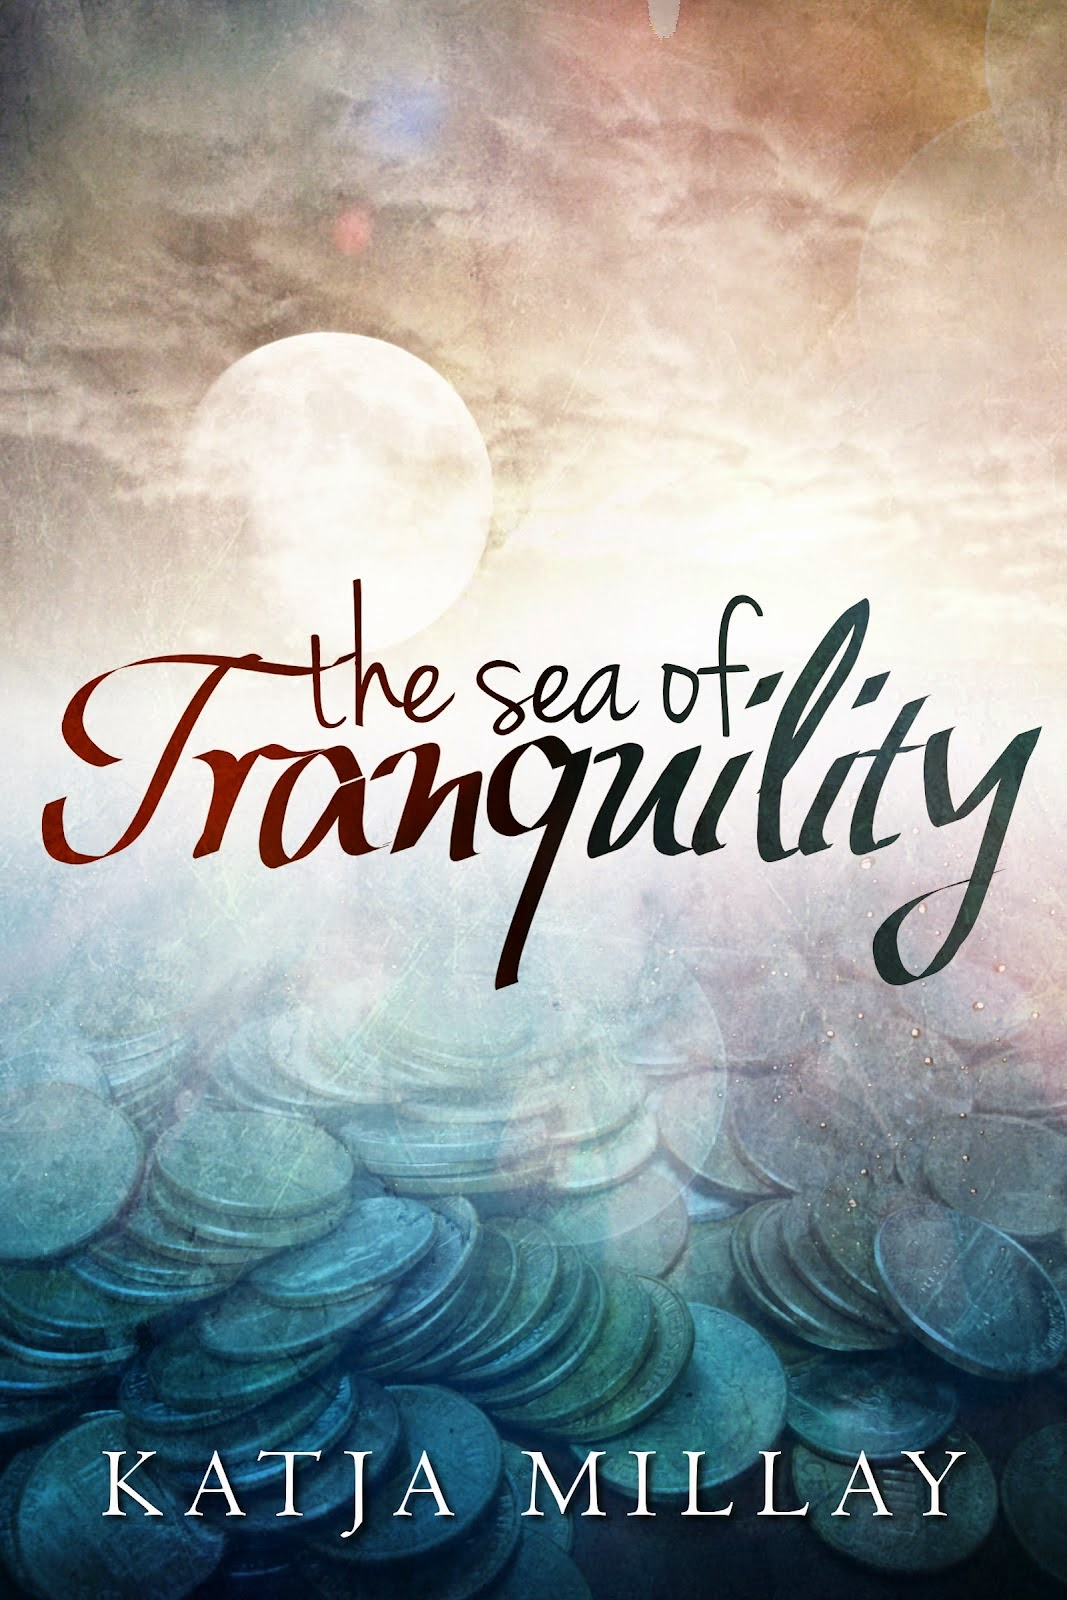 The Sea of Tranquility by Katja Millay - Original Cover